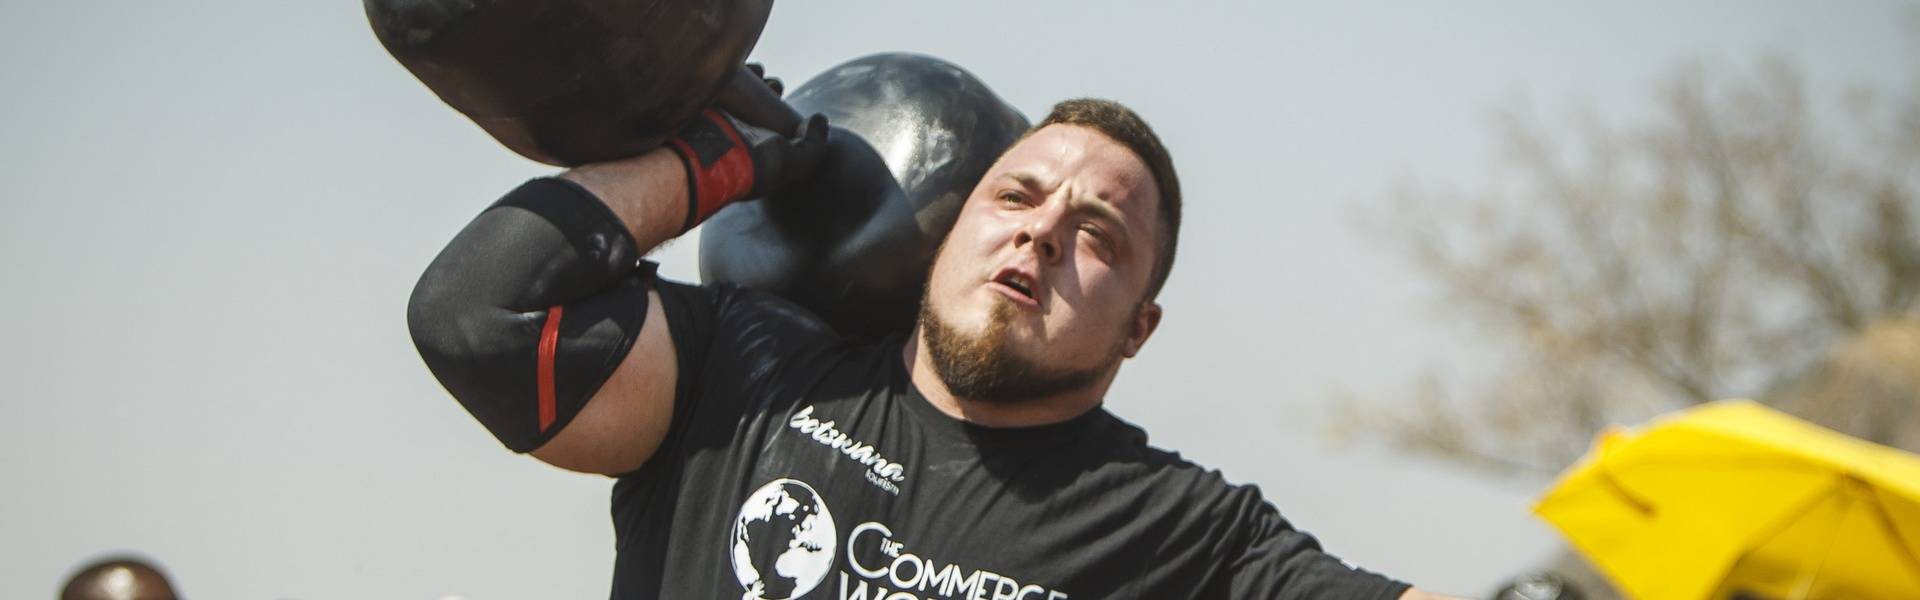 Belšak giant dumbell world record